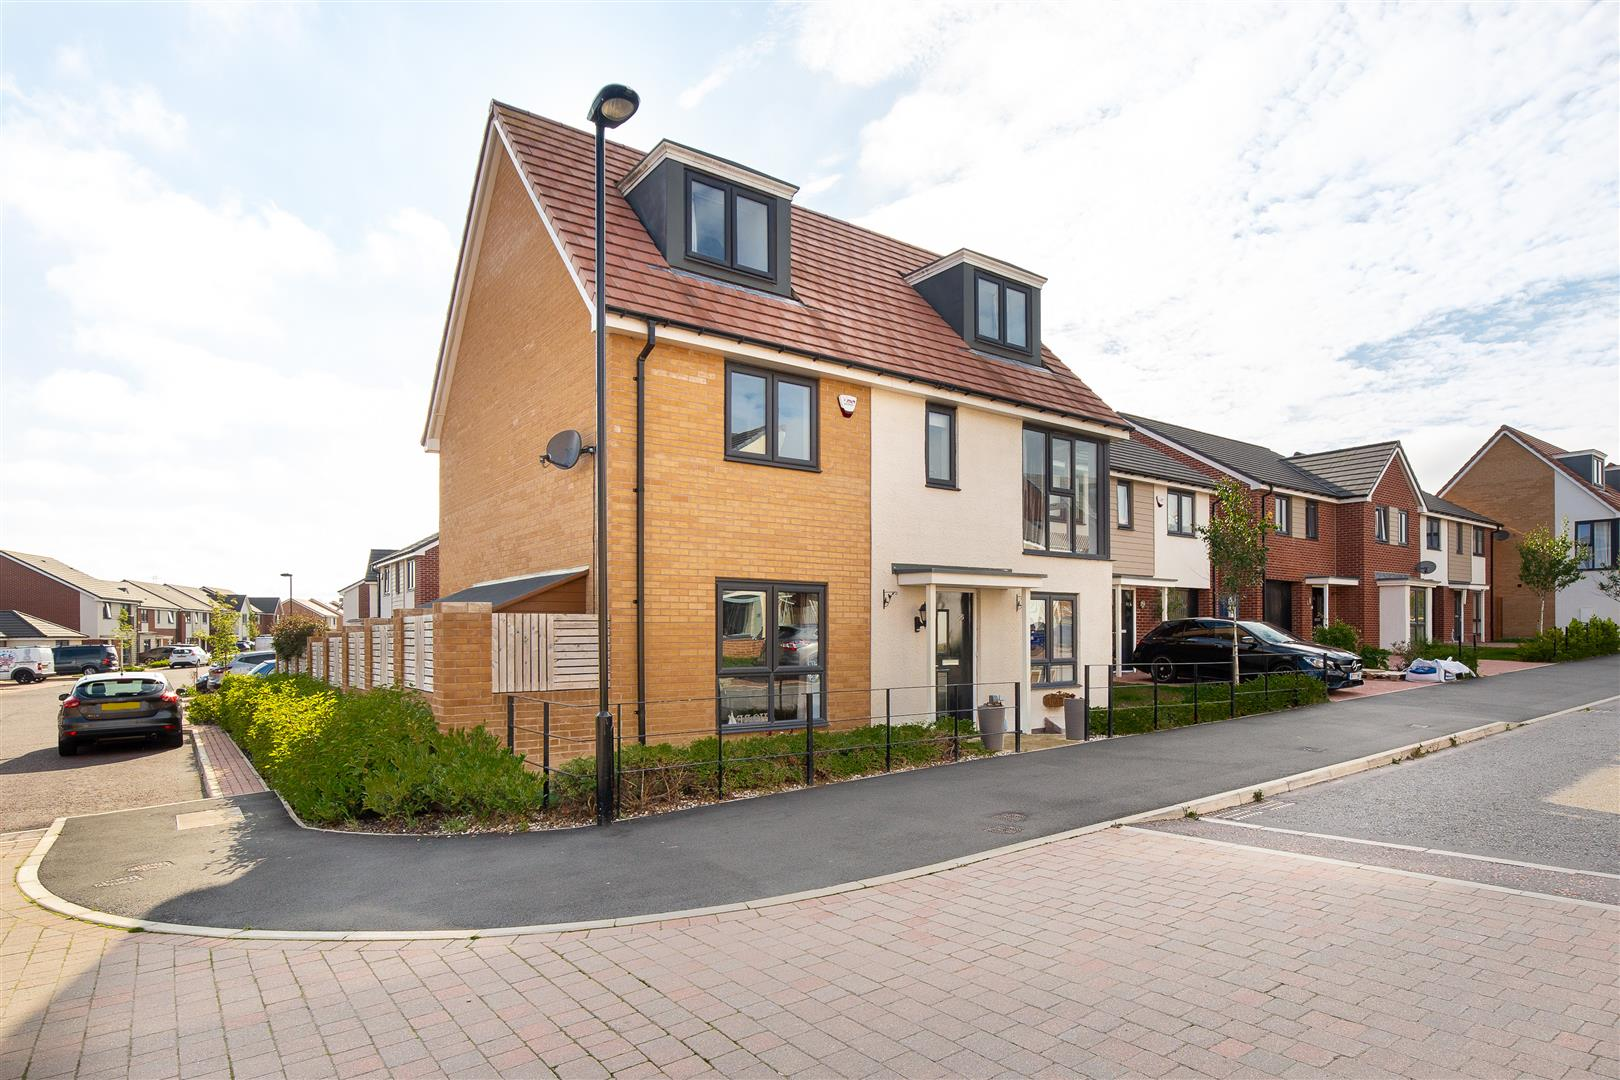 5 bed detached house for sale in Newcastle Upon Tyne, NE13 9BY  - Property Image 1